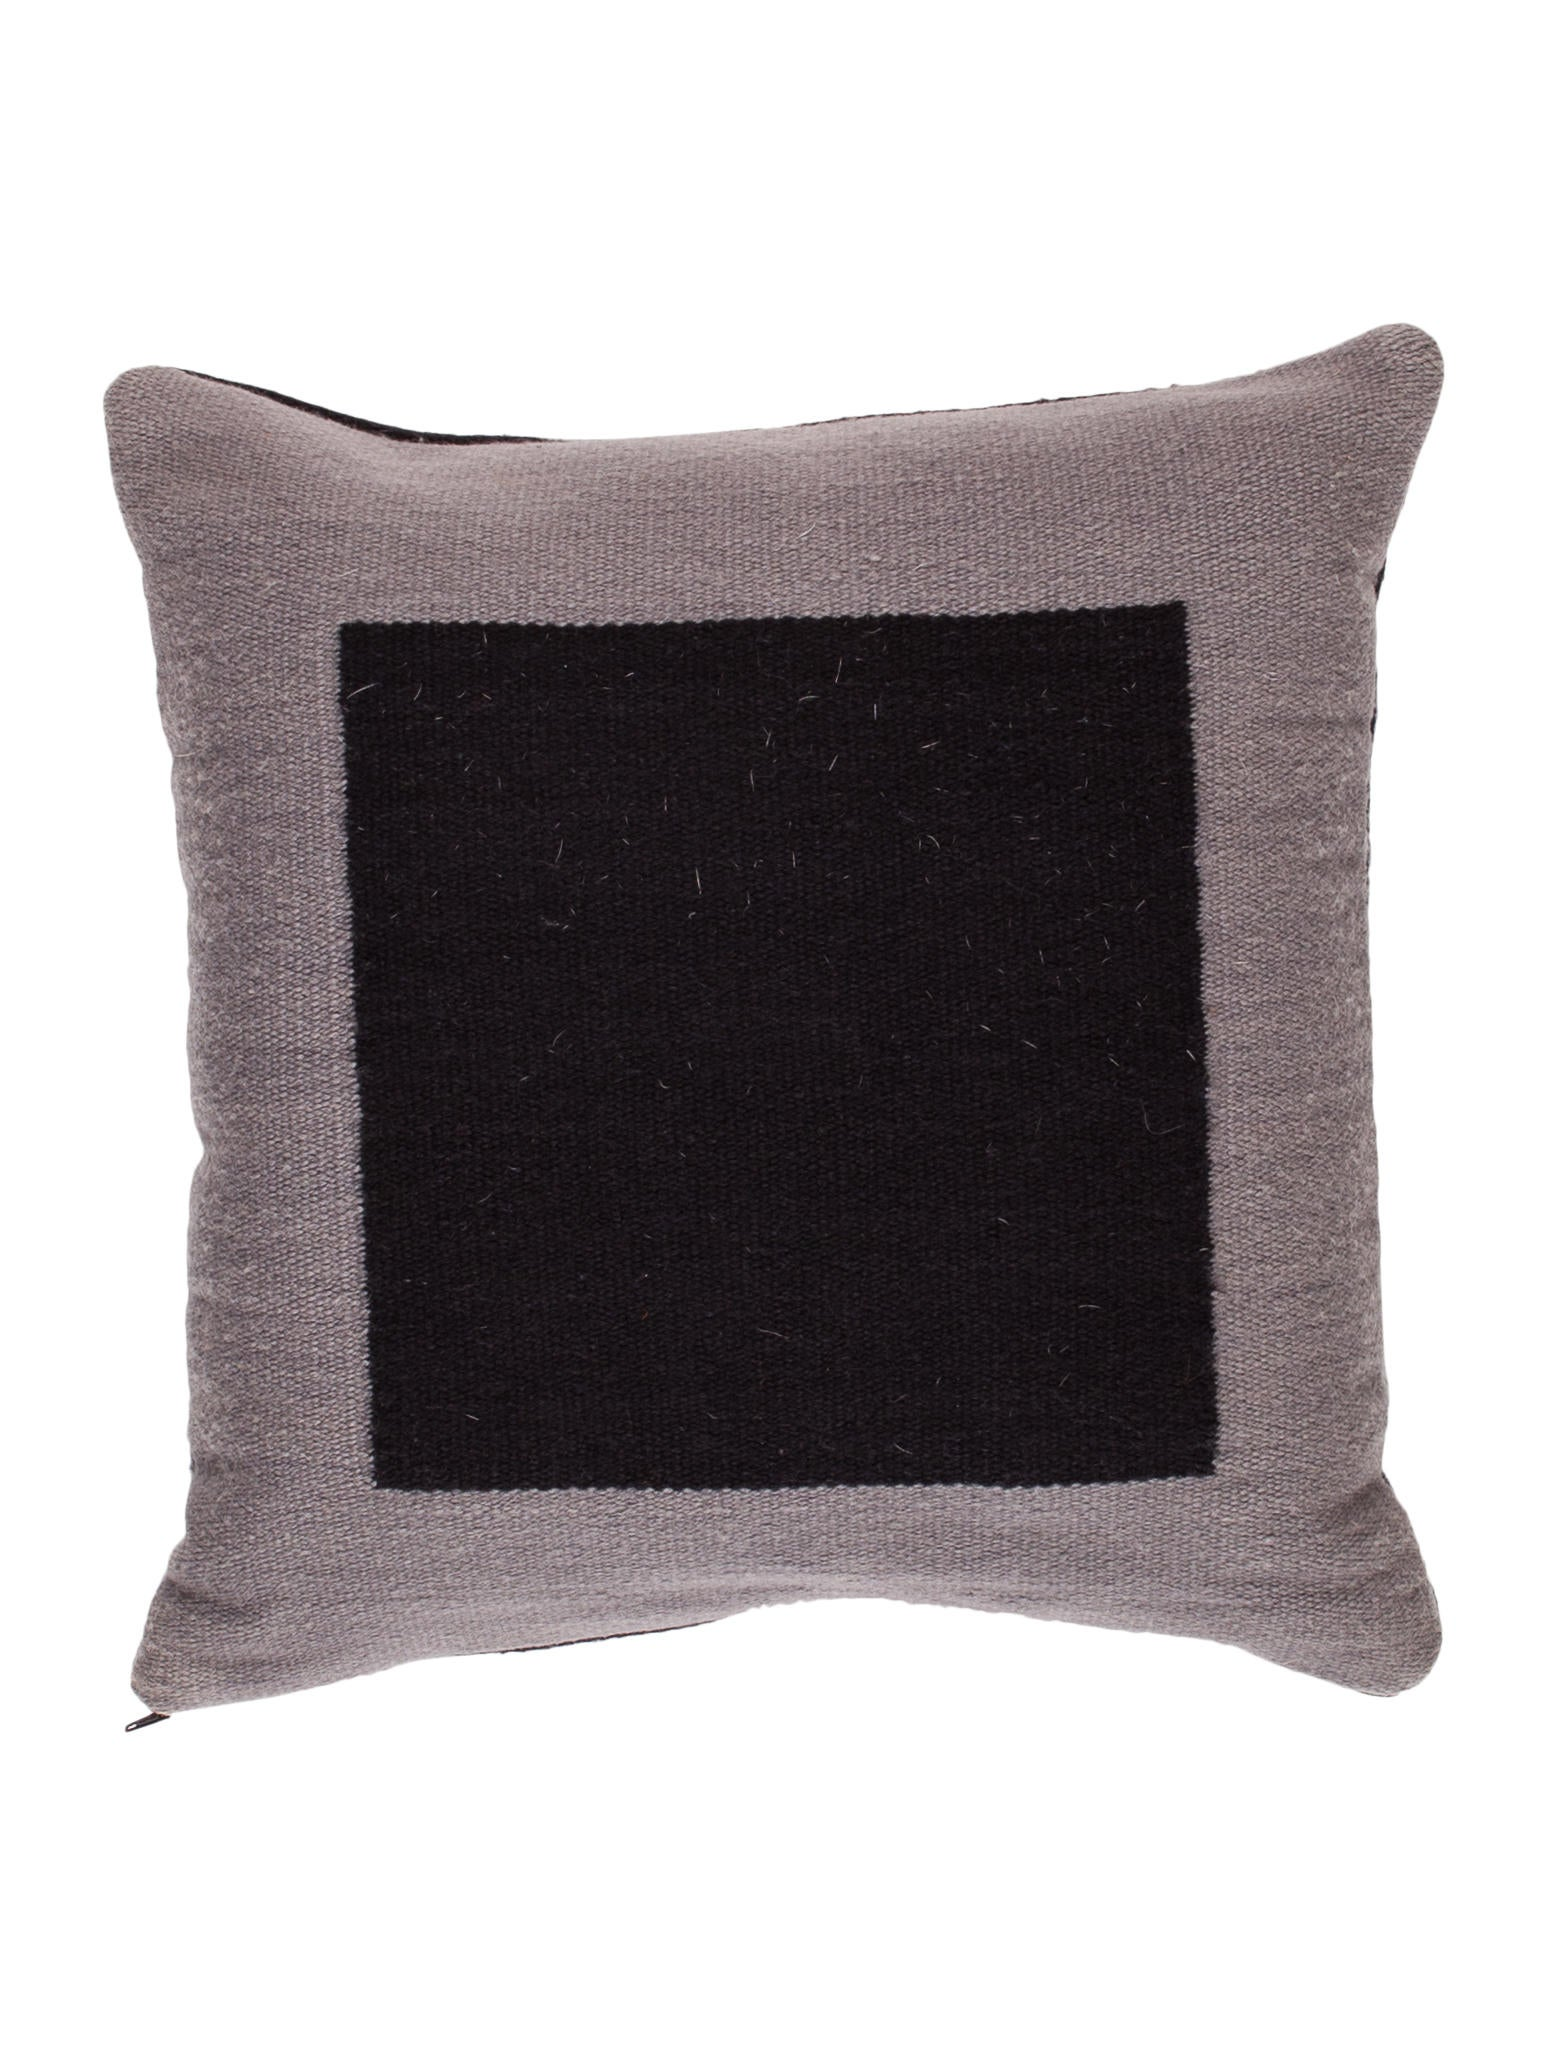 Square Decorative Pillows : Jonathan Adler Square Throw Pillow - Bedding And Bath - JTADL20804 The RealReal